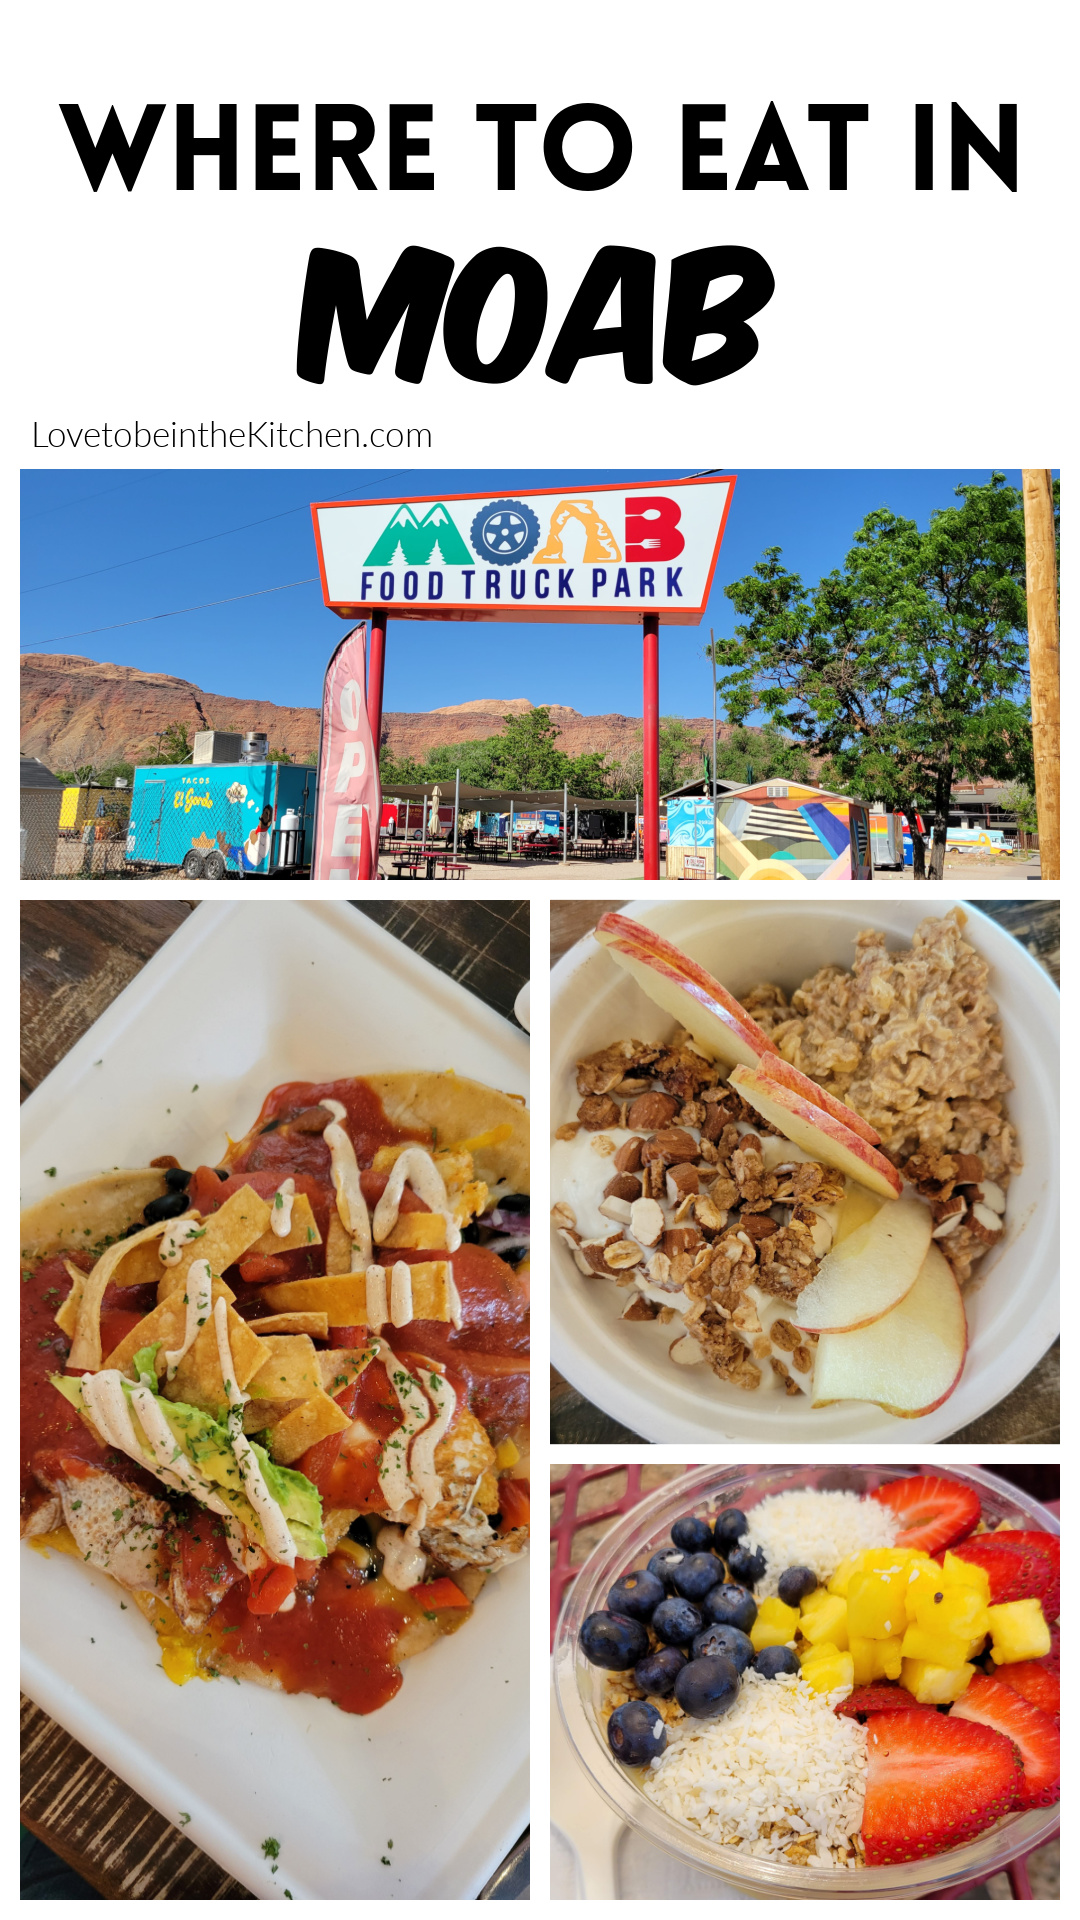 Where to eat in Moab